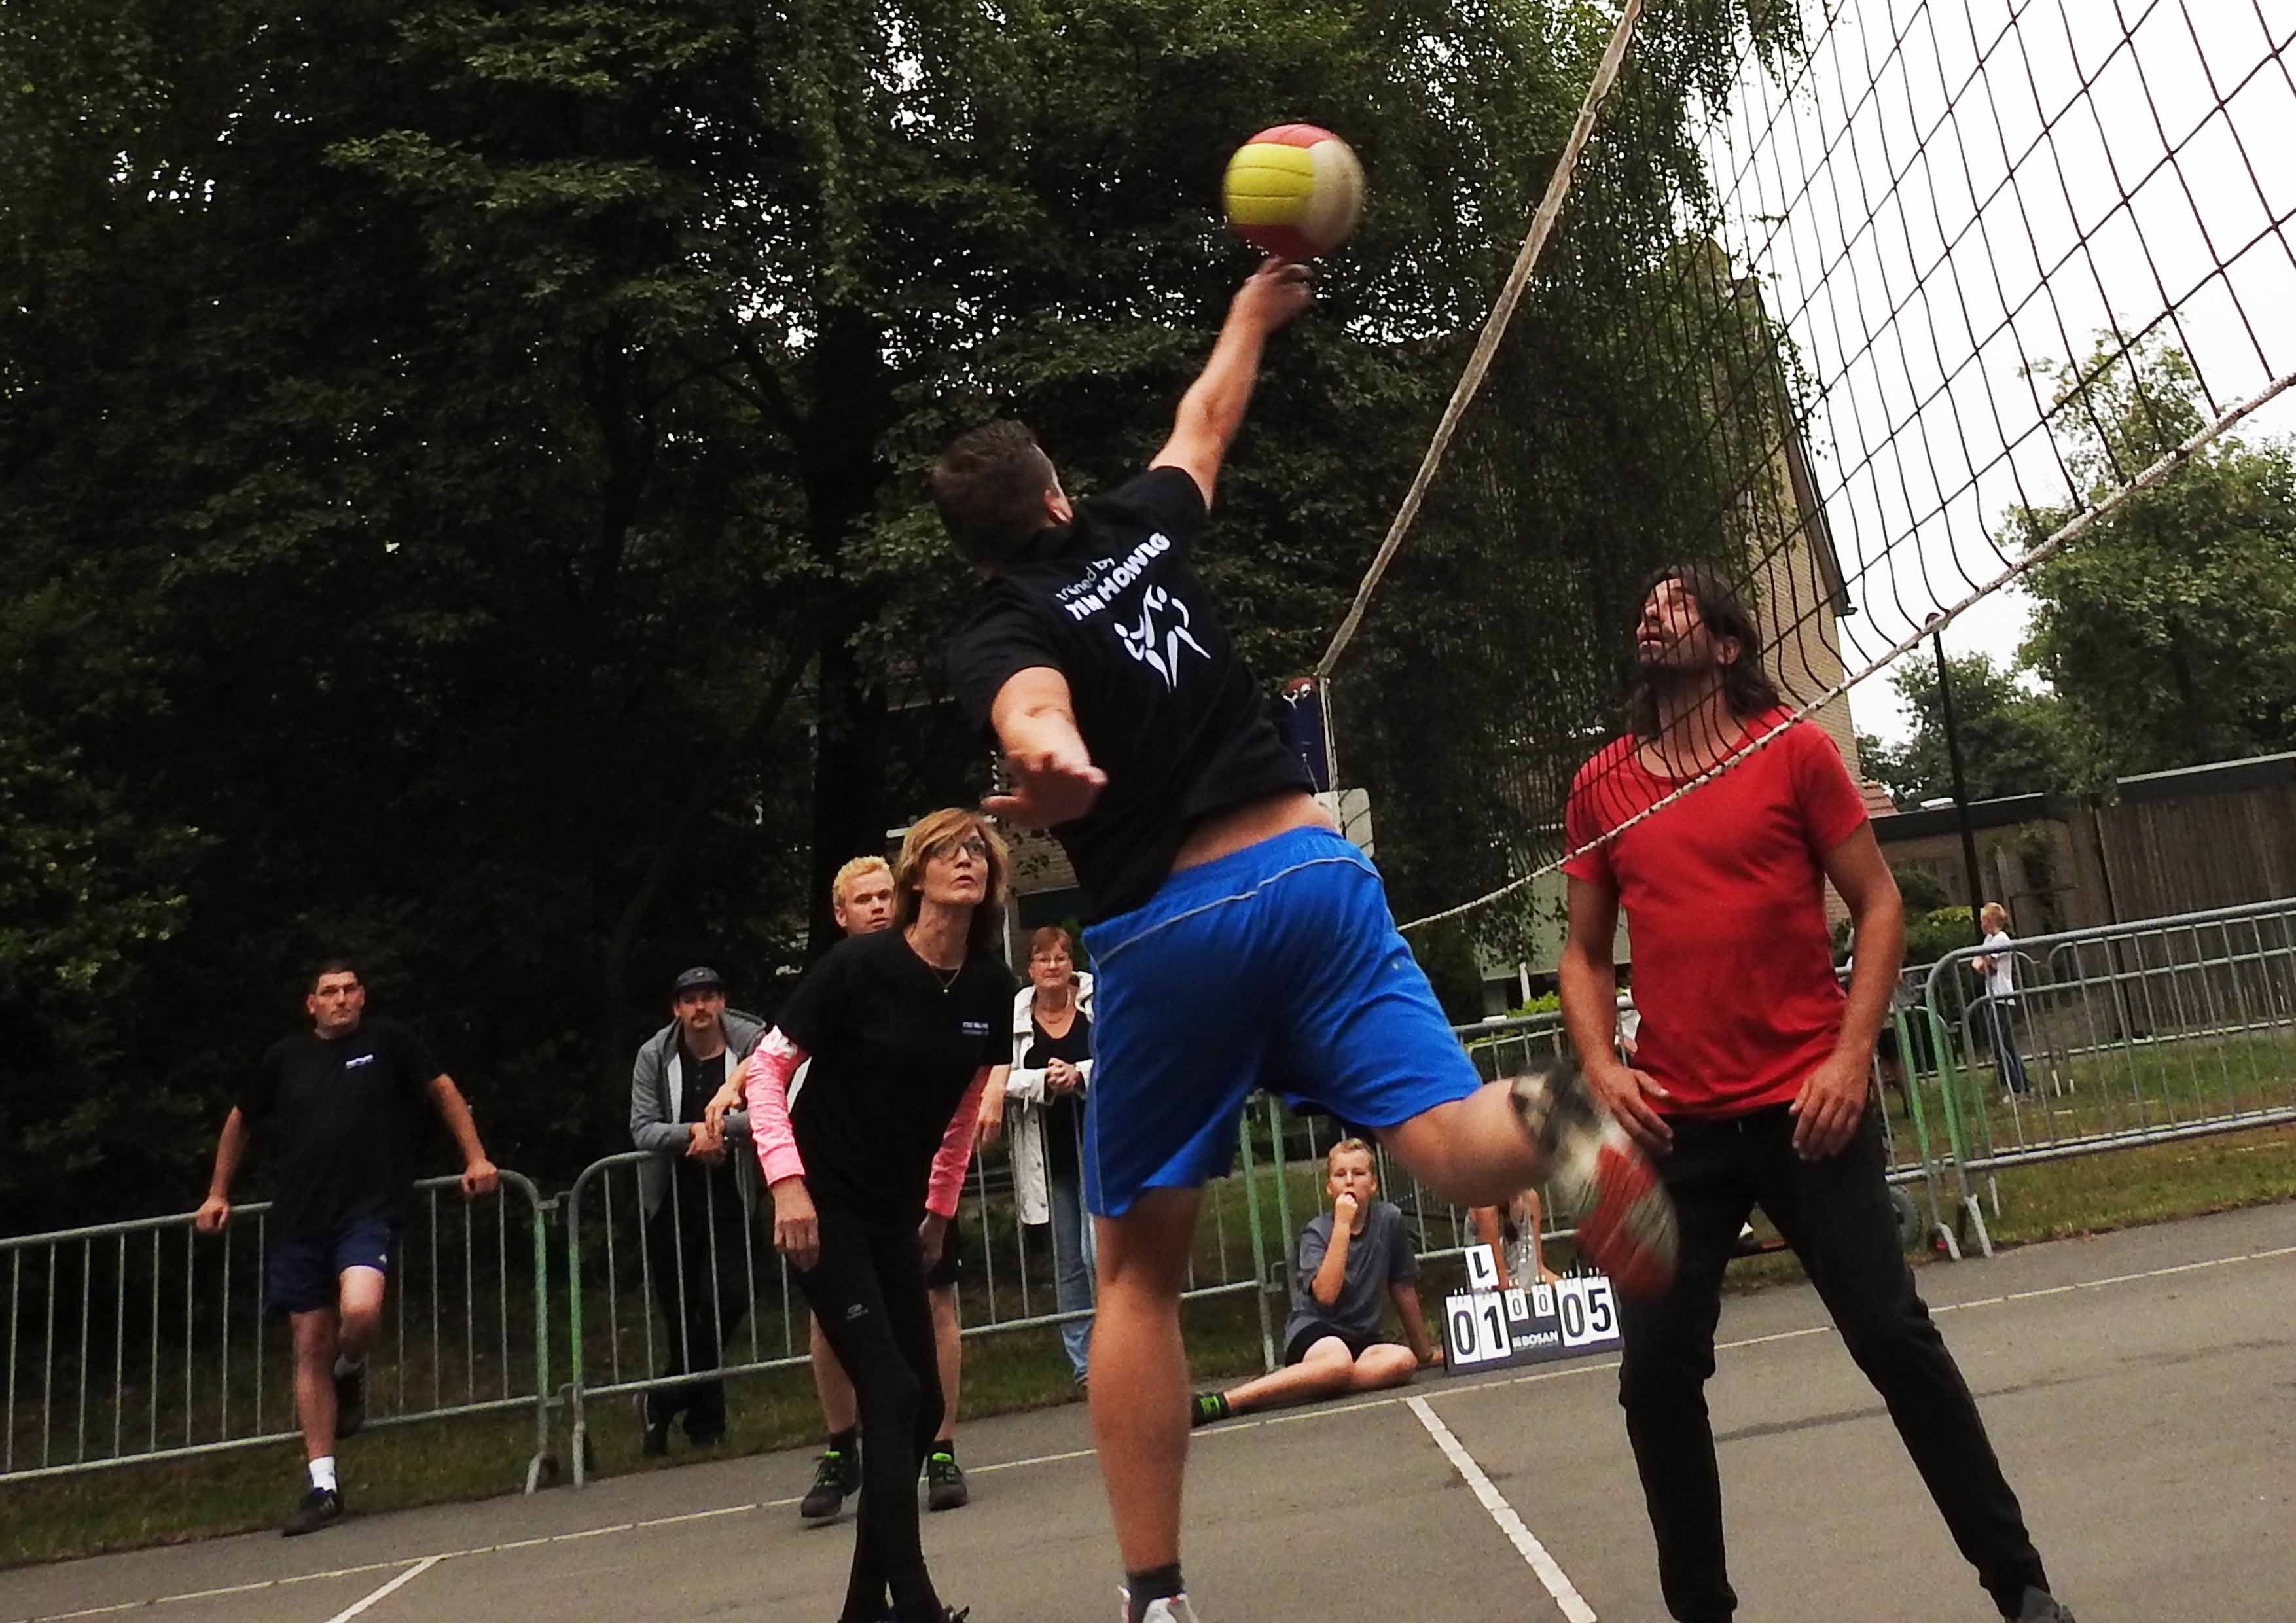 2017-06-29_BB_Straatvolleybal (60)